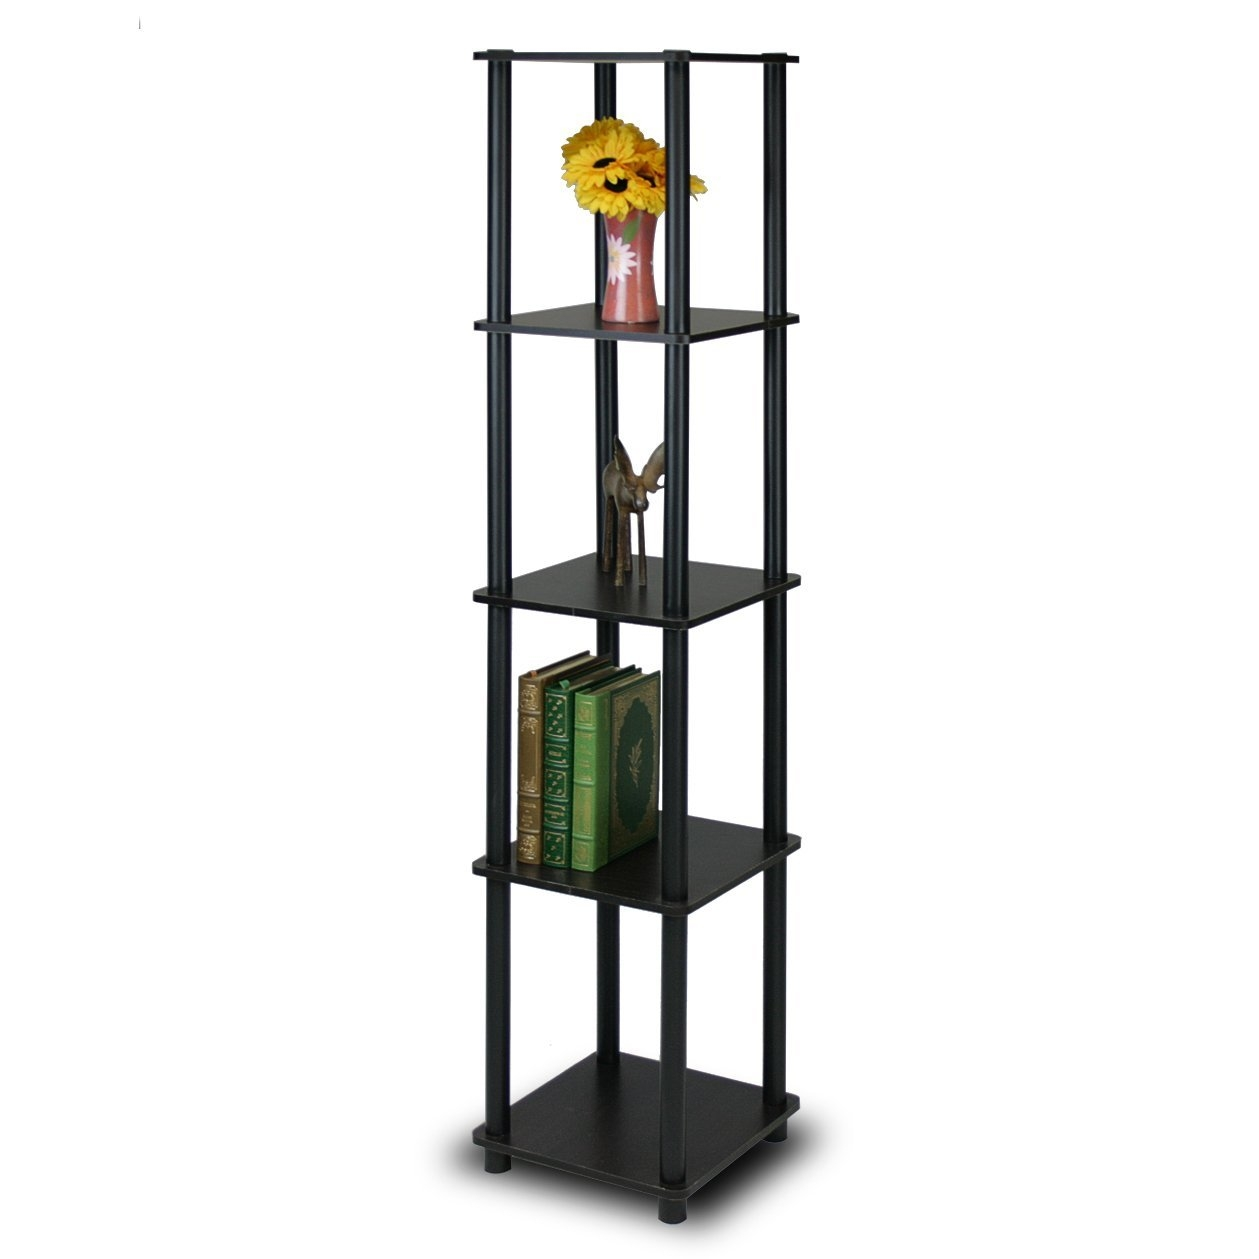 This 5-Tier Square Corner Display Shelf Bookcase in Espresso/Black is designed to meet the demand of low cost but durable and efficient furniture. It is proven to be the most popular furniture due to its functionality, price, and the no hassle assembly. The materials comply with e1 grade particle board for furniture. There is no foul smell of chemicals, durable and it is the most stable particleboard used to make furniture. Care instructions: wipe clean with clean damped cloth. Avoid using harsh chemicals. We are pleased to send you the replacement part free of charge. Pictures are for illustration purpose. All decor items are not included in this offer. Pictures are for illustration purpose. All decor items are not included in this offer.